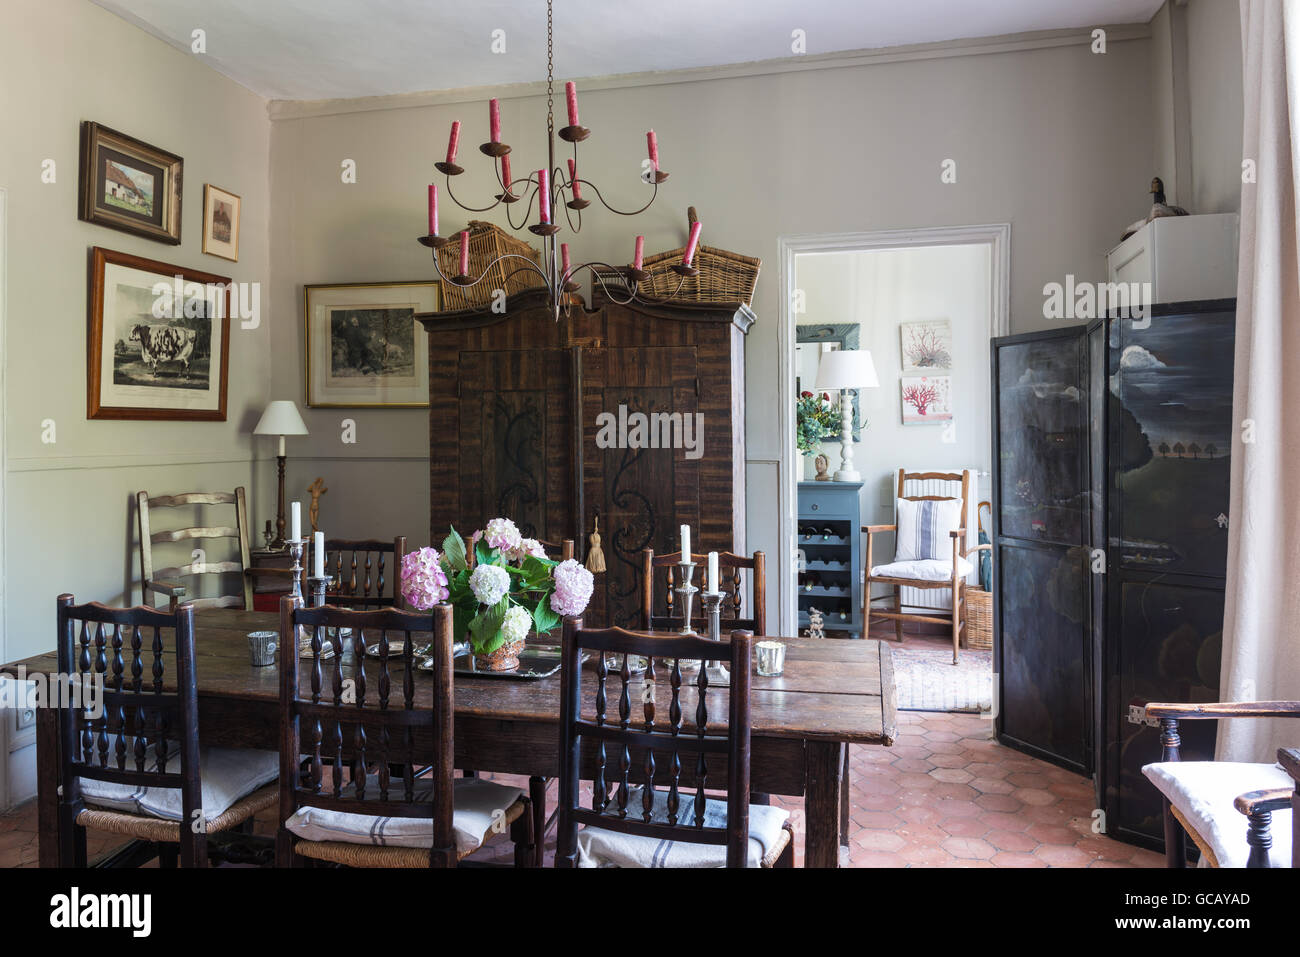 18th Century Oak Table And Yorkshire Chairs In Dining Room With Terracotta Flooring Painted Austrian Cupboard Ceiling